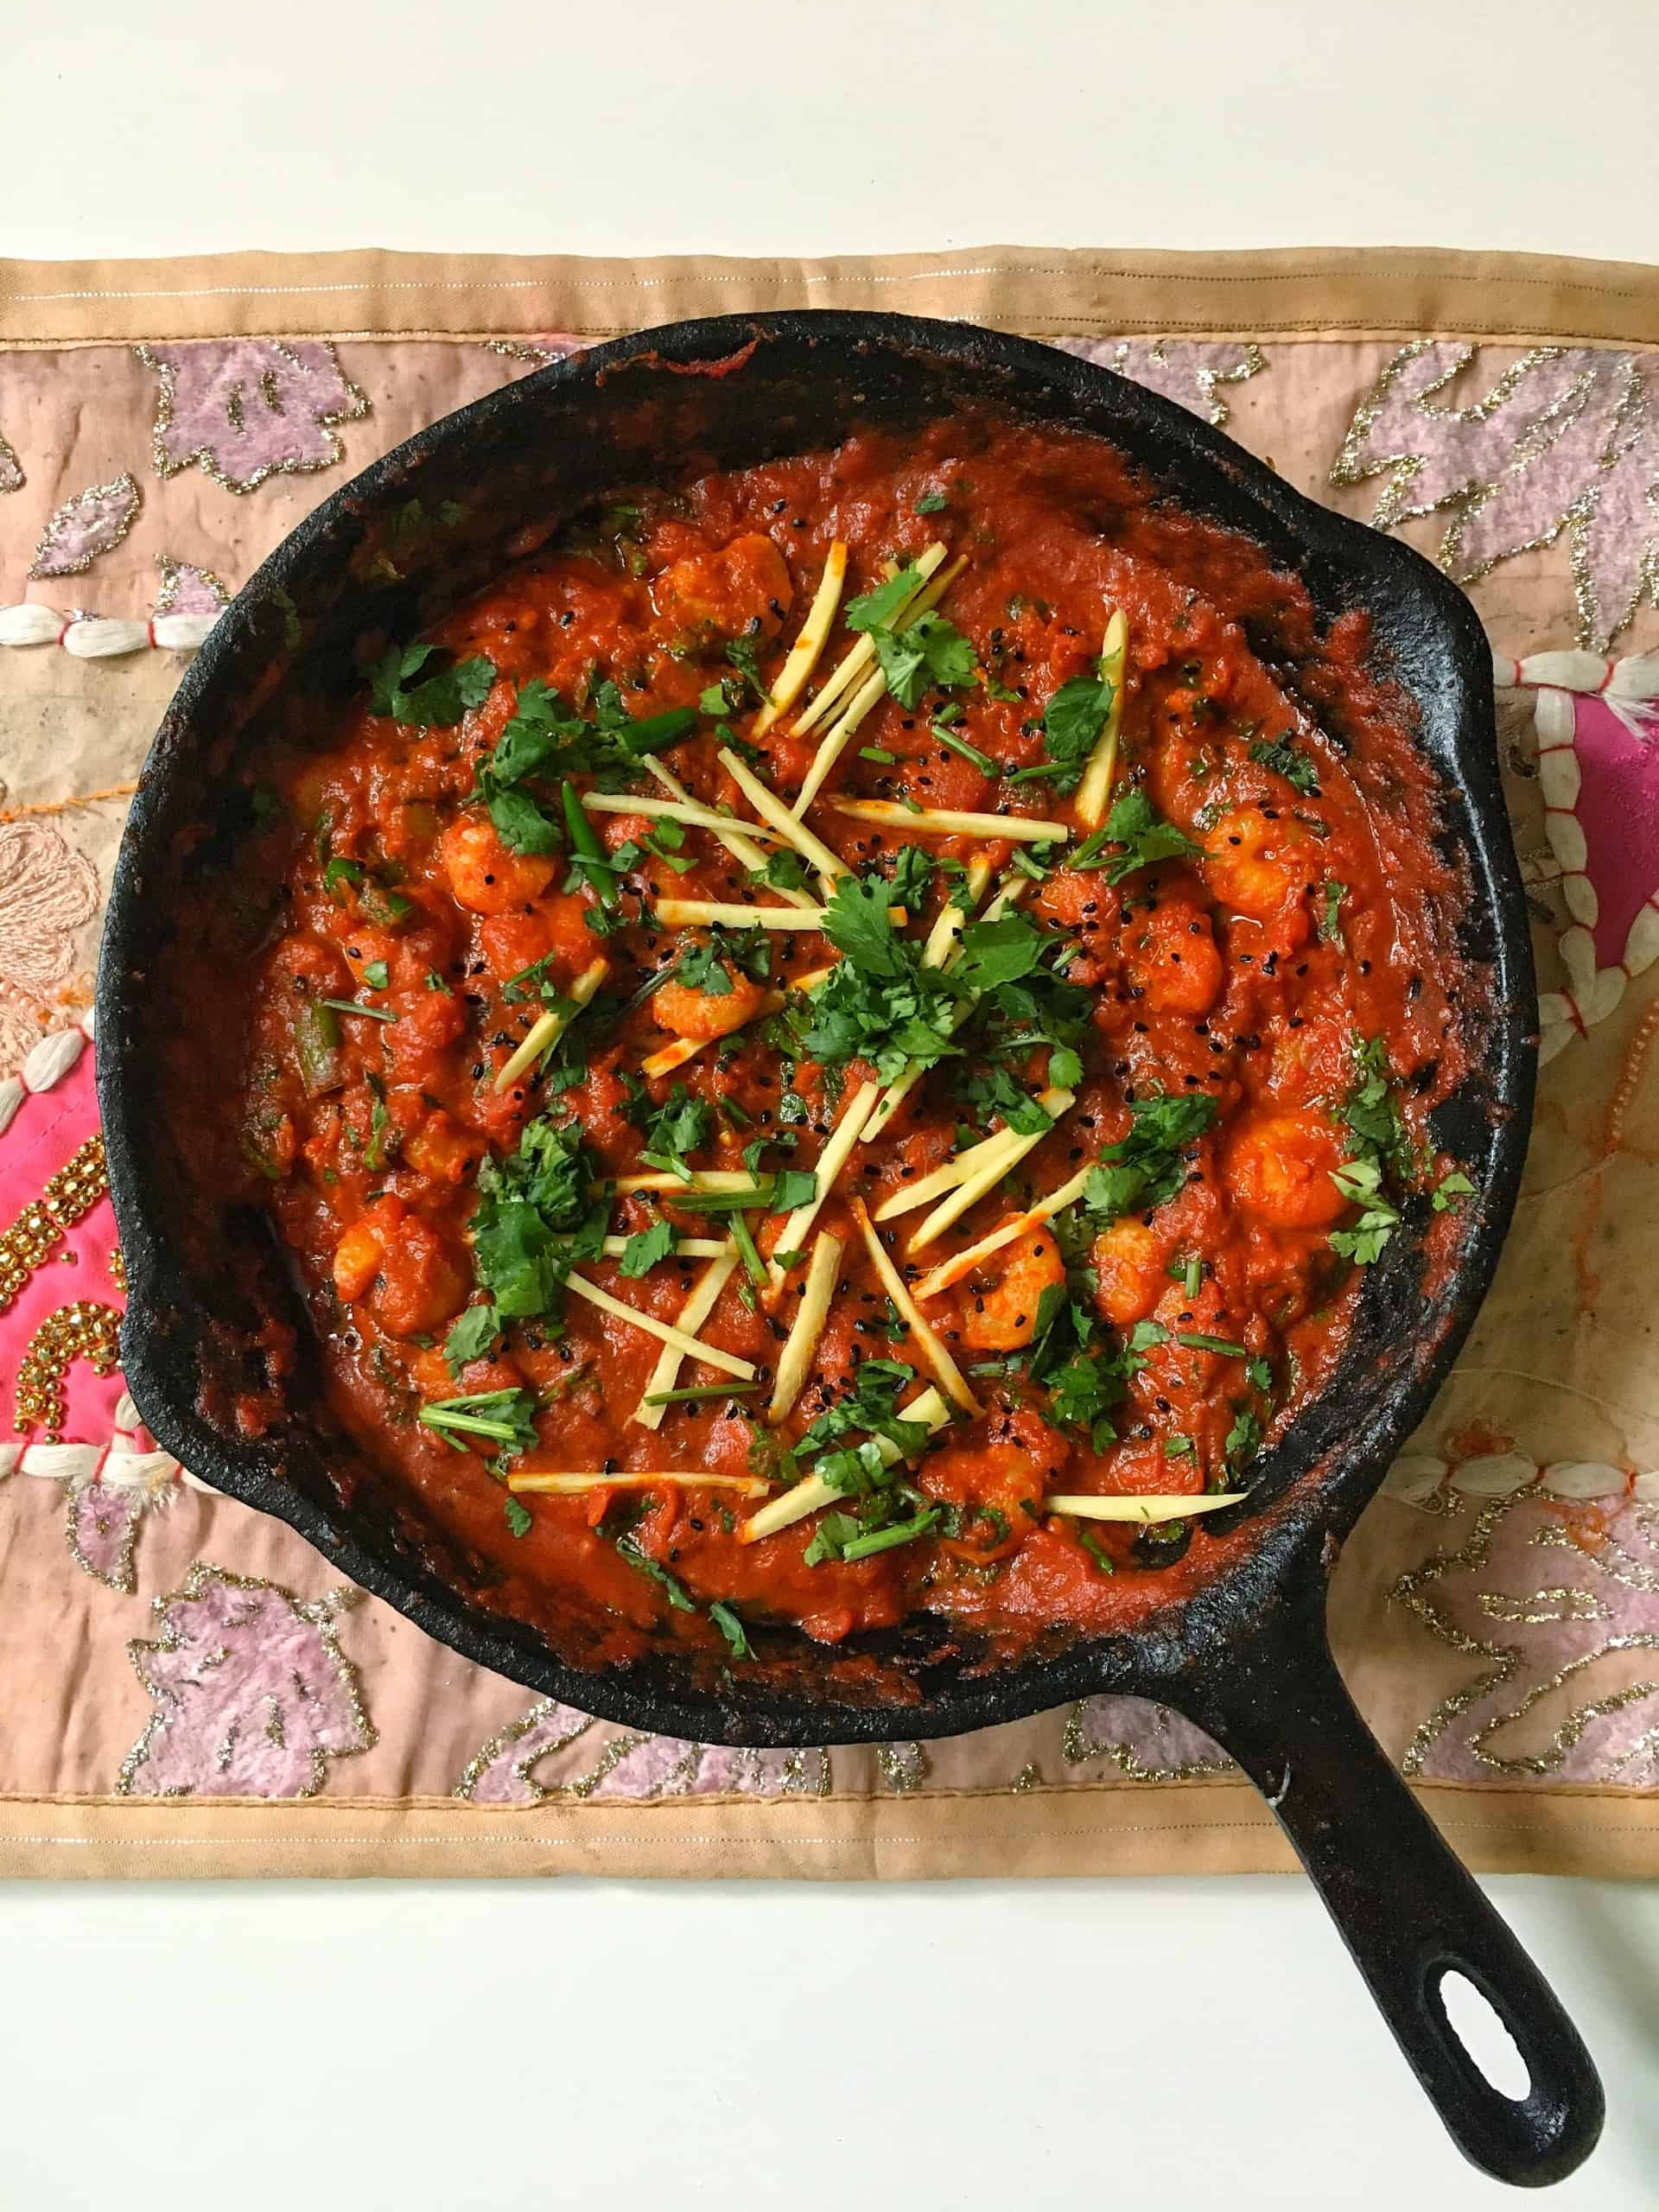 How To Make Prawn Karahi Masala - A Pakistani & Indian Tomato Based Curry Recipe